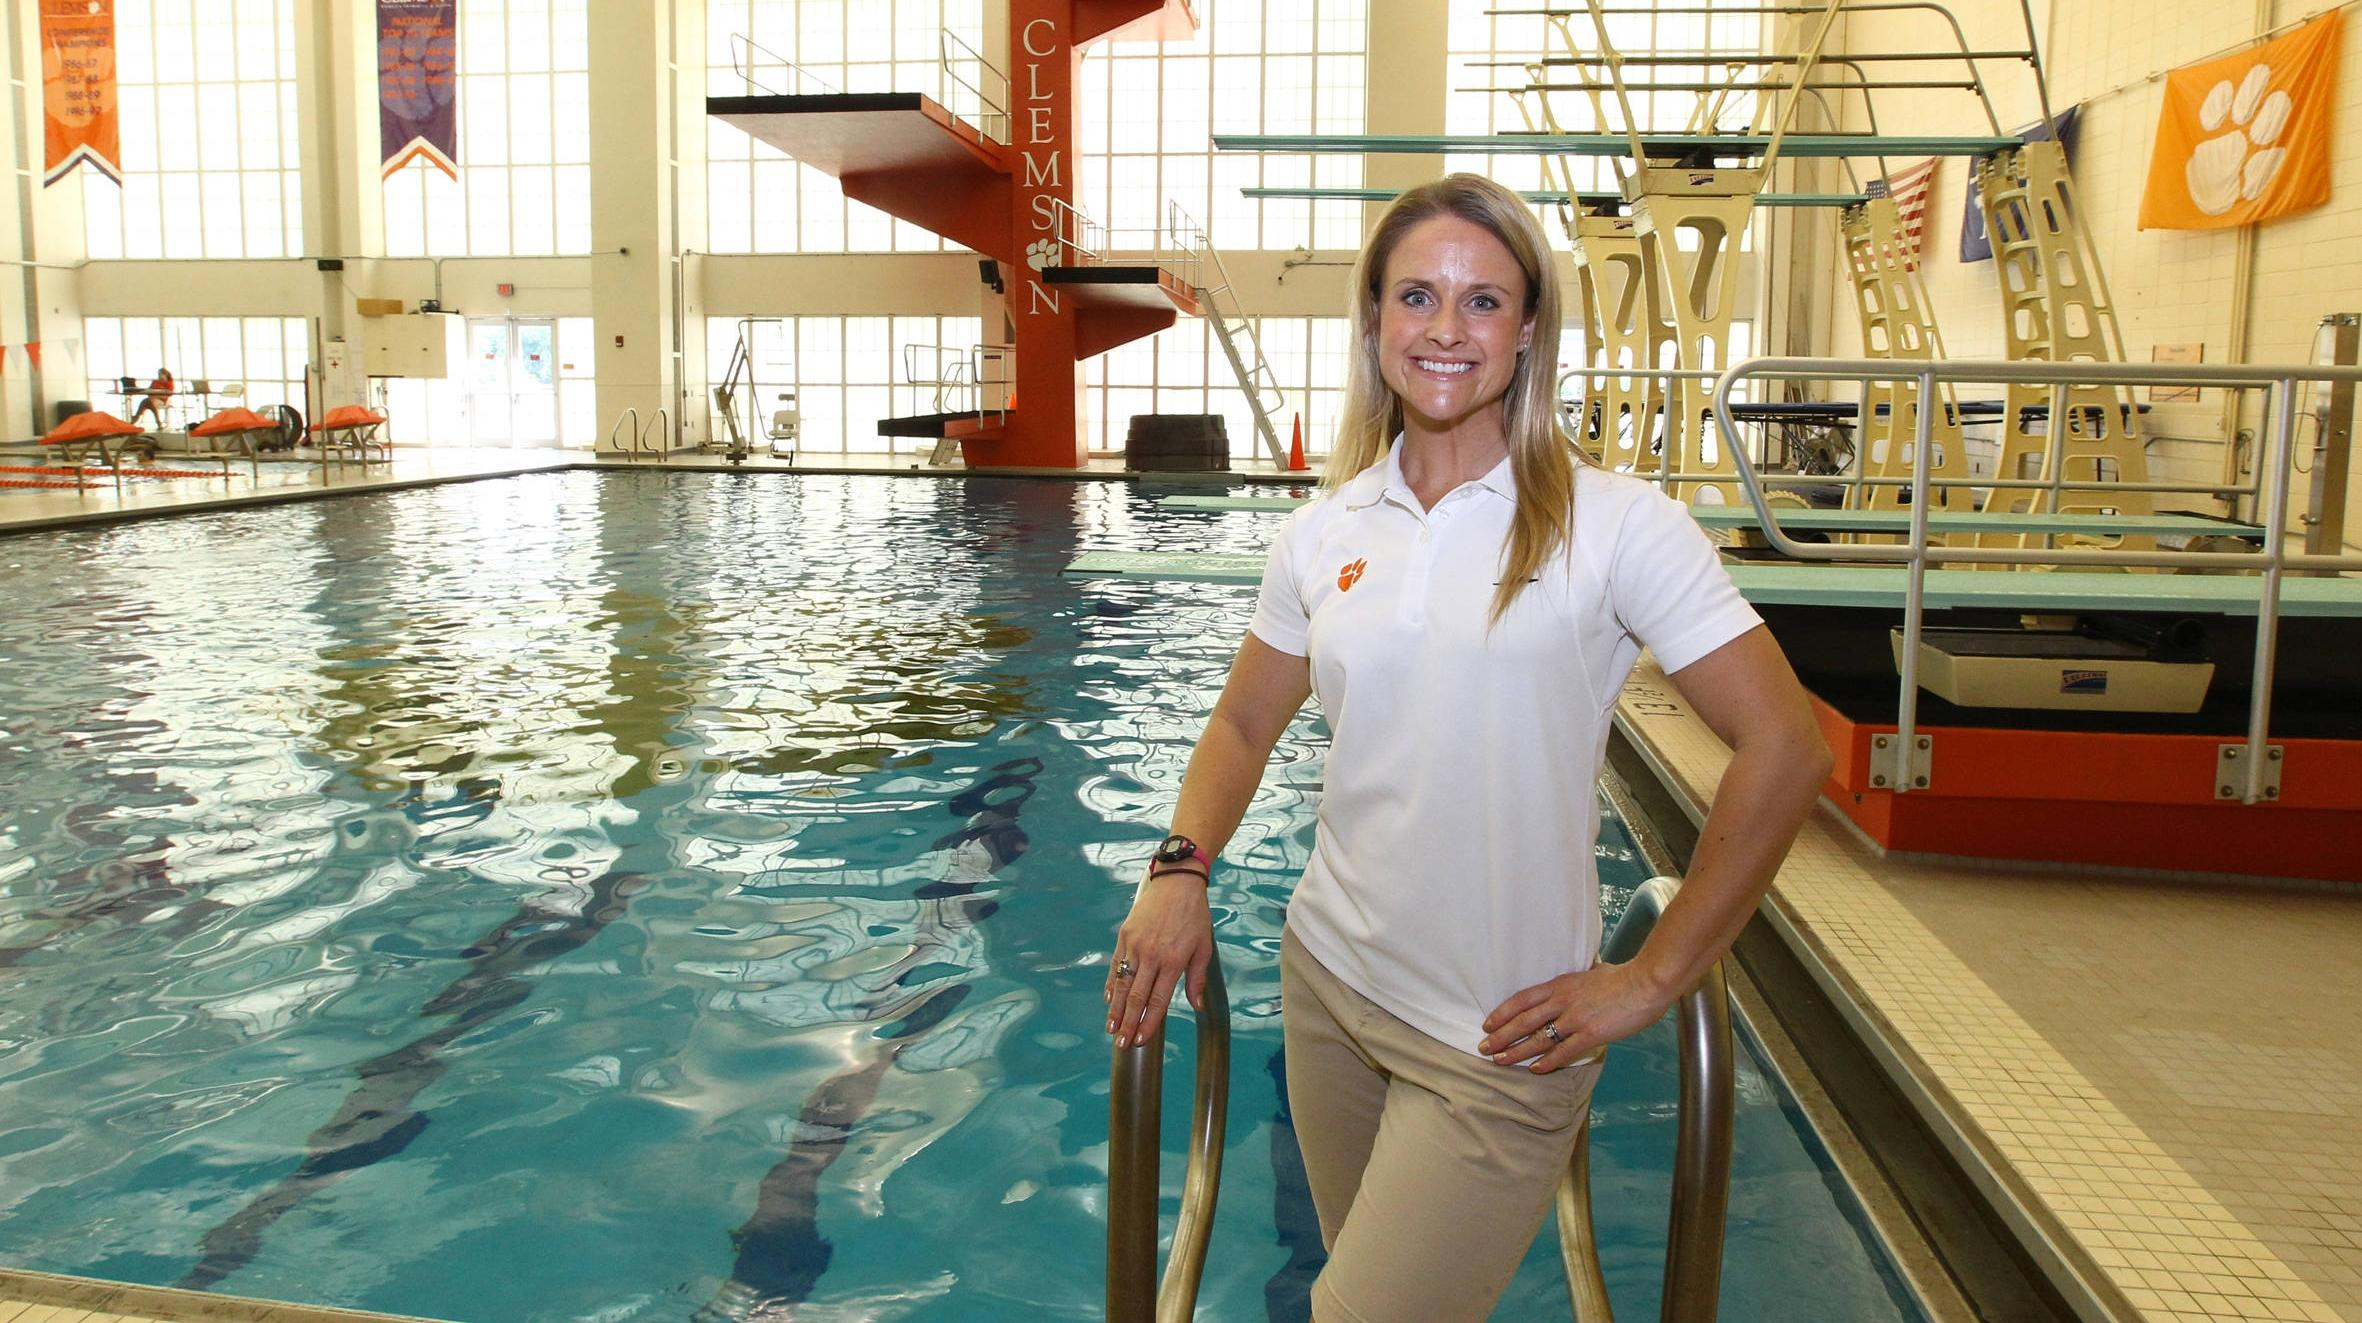 Diving Coach to Appear in Reality TV Show